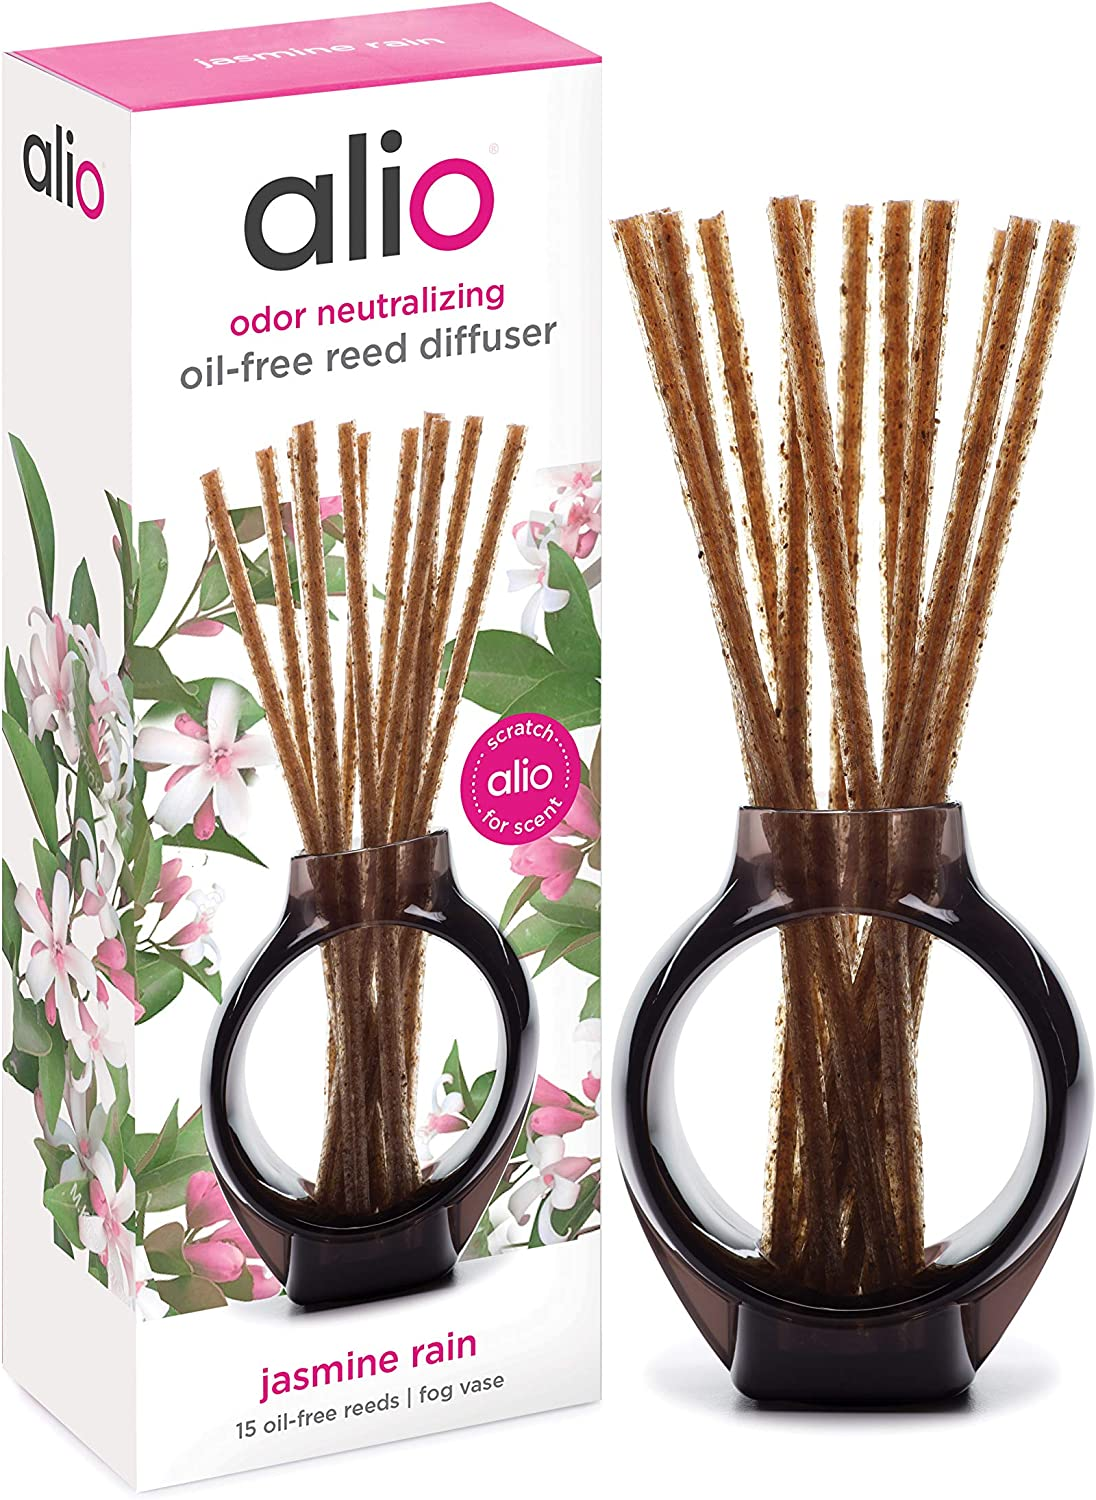 ALIO Oil-Free Reed Diffuser – Jasmine Rain – Odor Neutralizing with Subtle Scent, Pet and Eco Friendly – Set of 15 Oil-Free Reeds and Signature Vase – No Oils, Sprays, Plug-Ins, or Flames Required